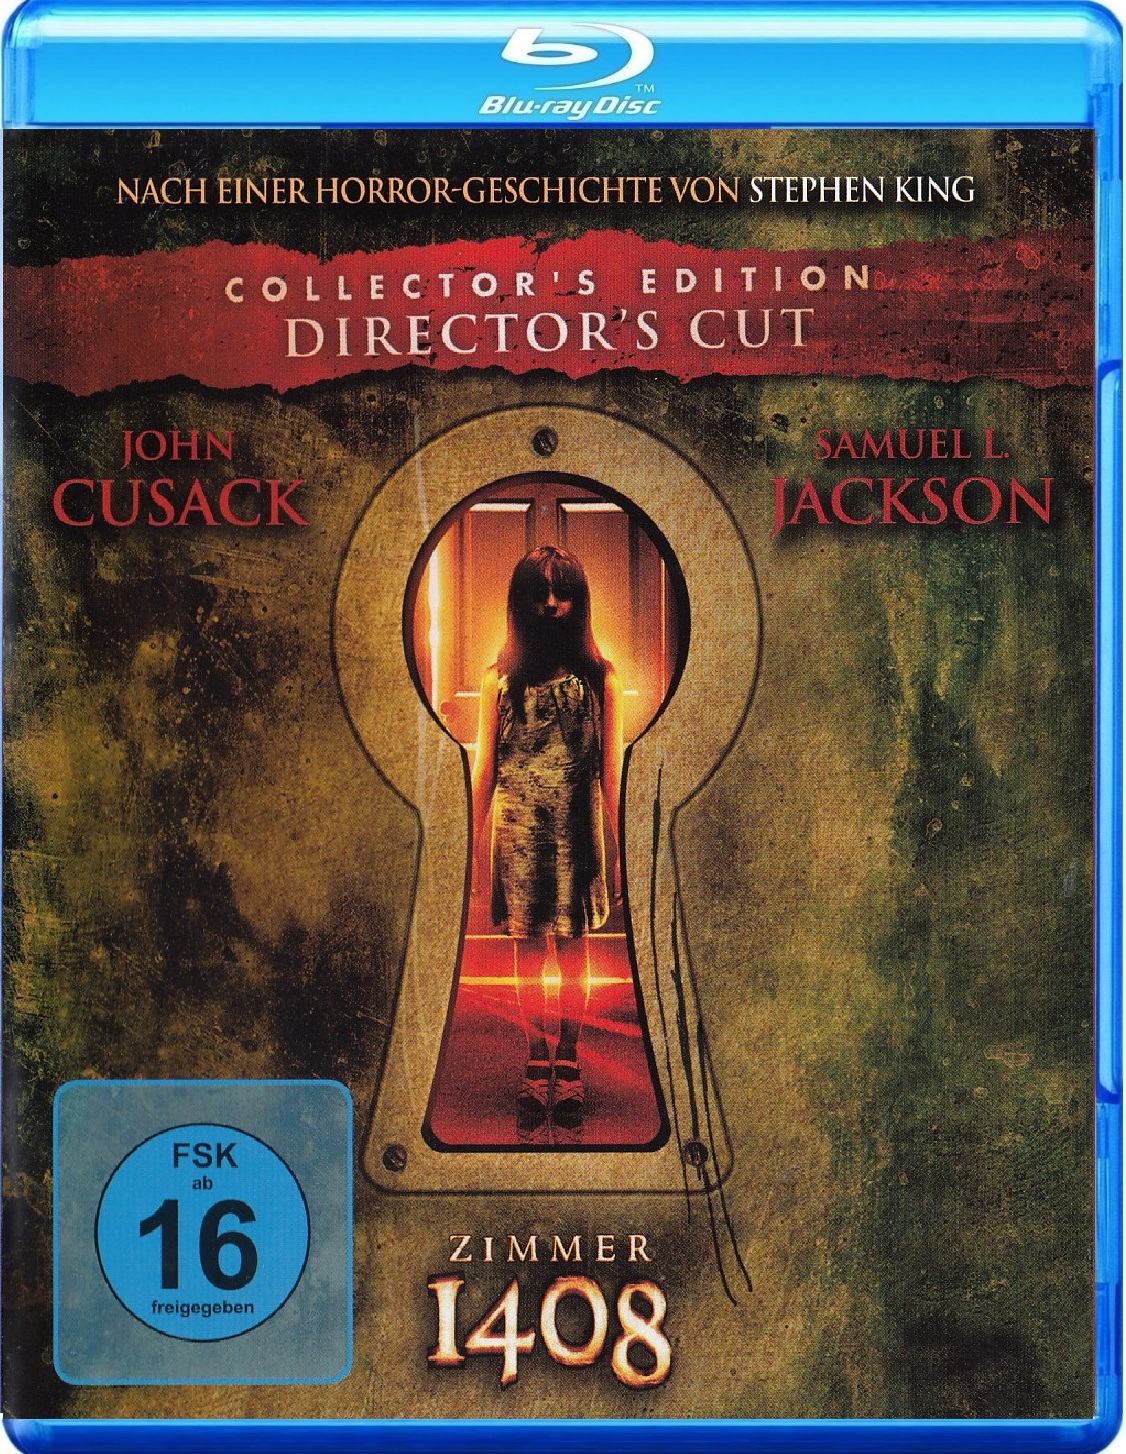 Zimmer 1408 [Director´s Cut, Collector´s Edition]